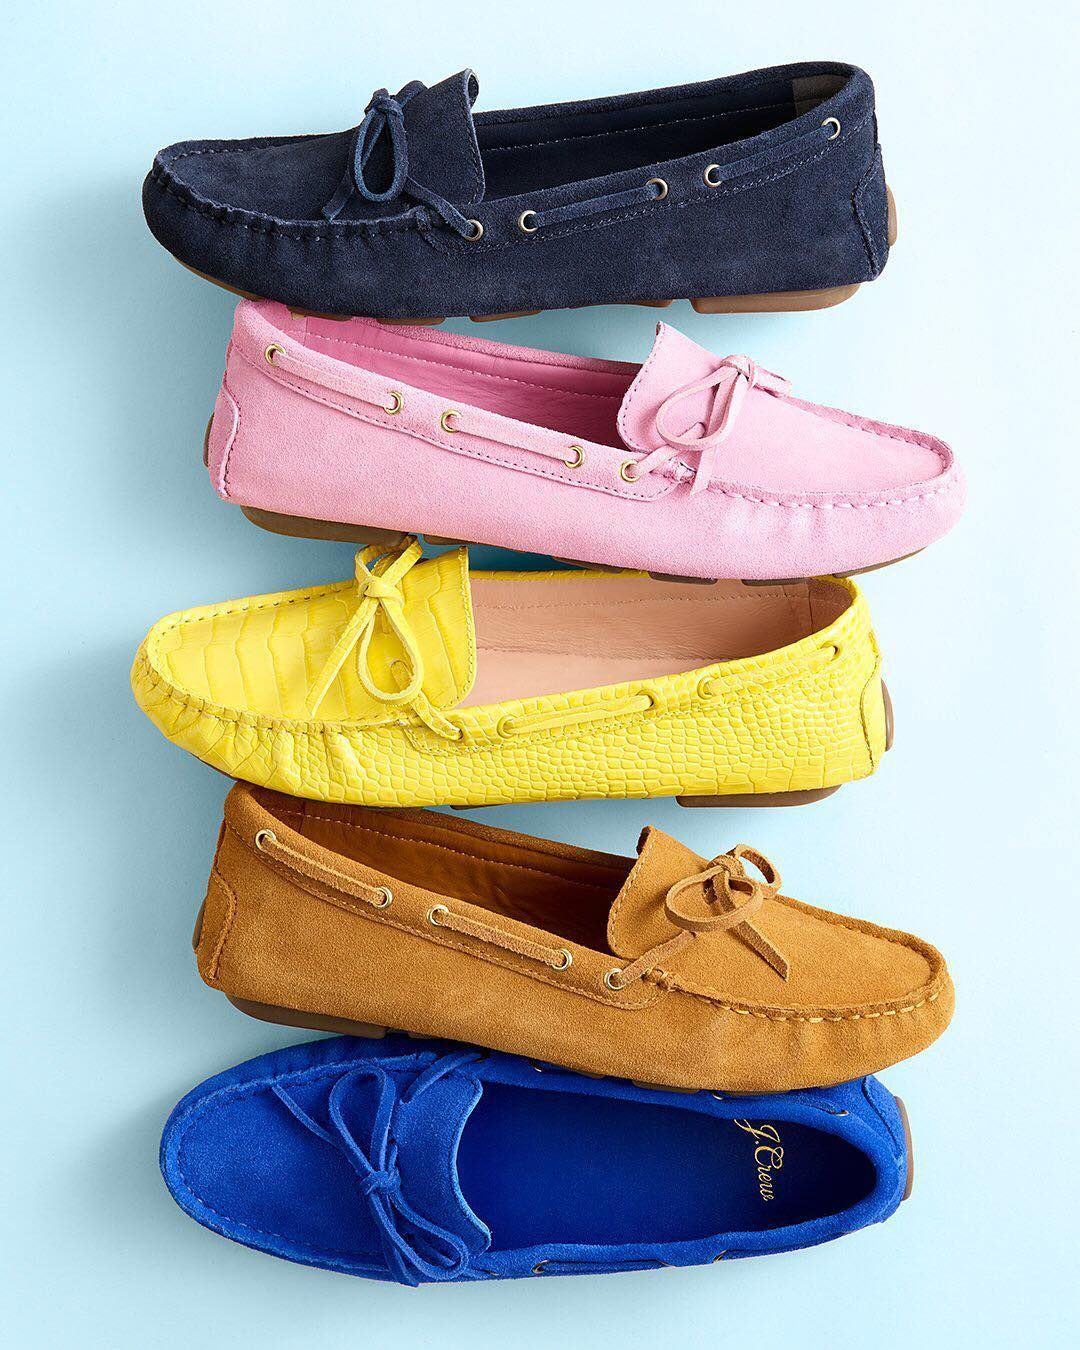 """b81035ee1f9 J.Crew on Instagram: """"Care to take our new driving moccasins for a ..."""